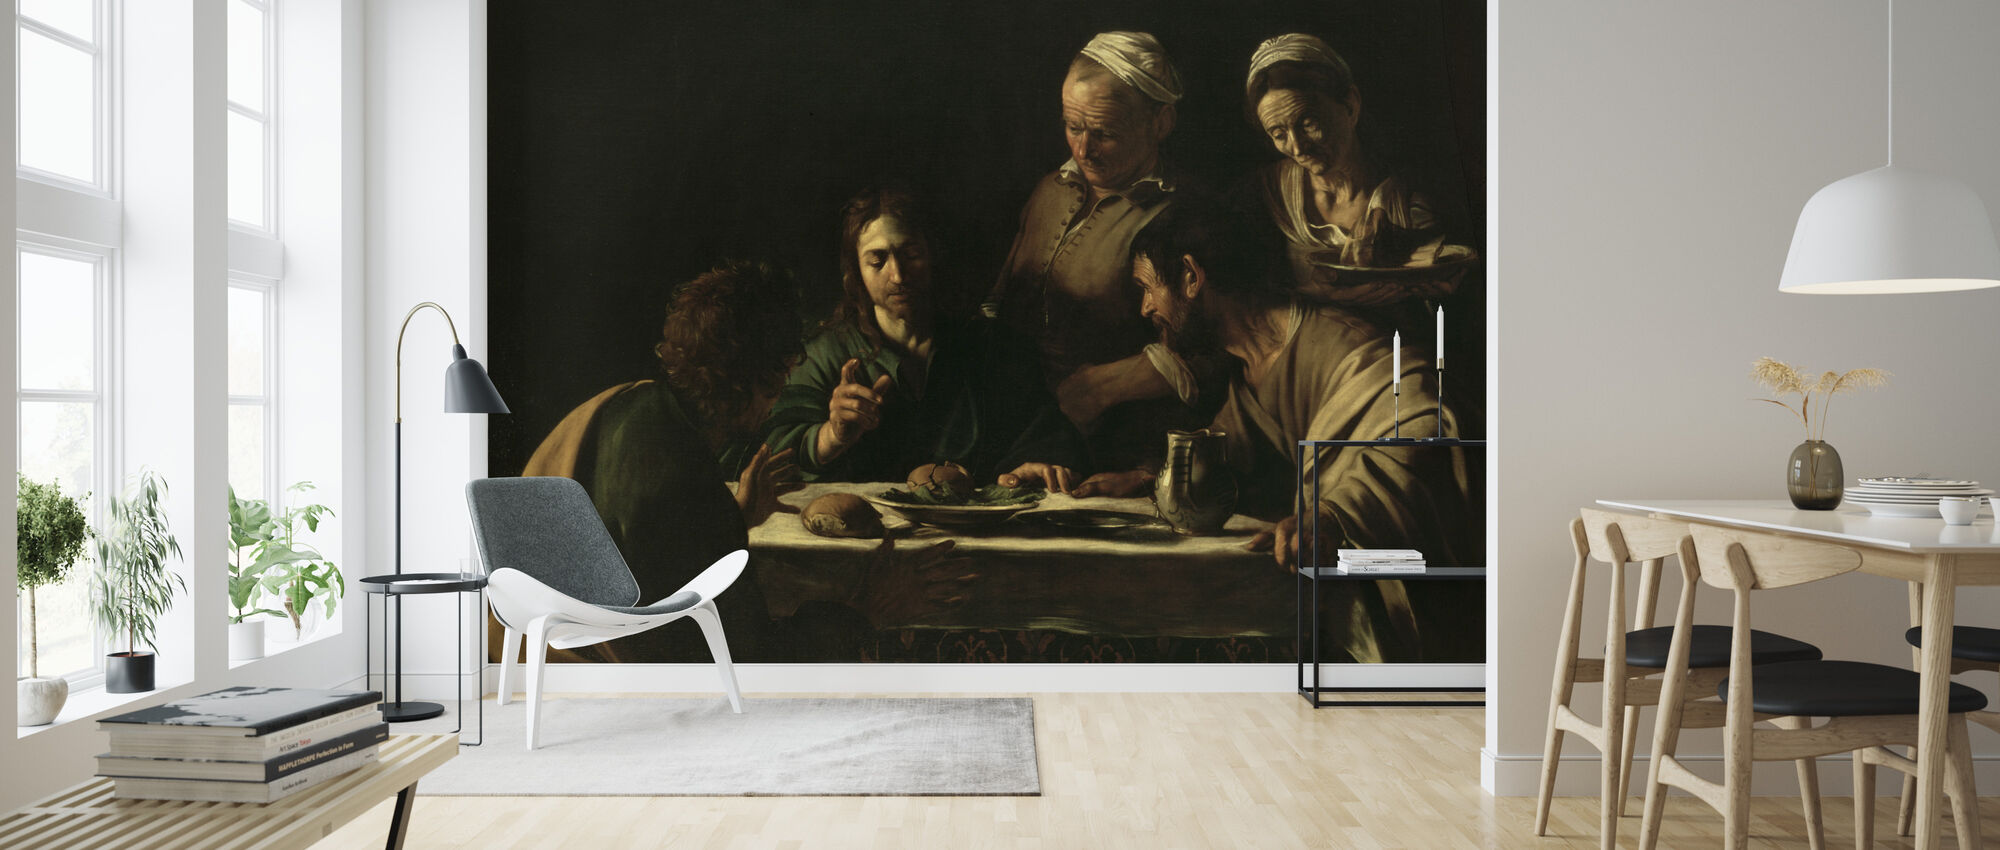 Supper at Emmaus - Michelangelo Caravaggio - Wallpaper - Living Room